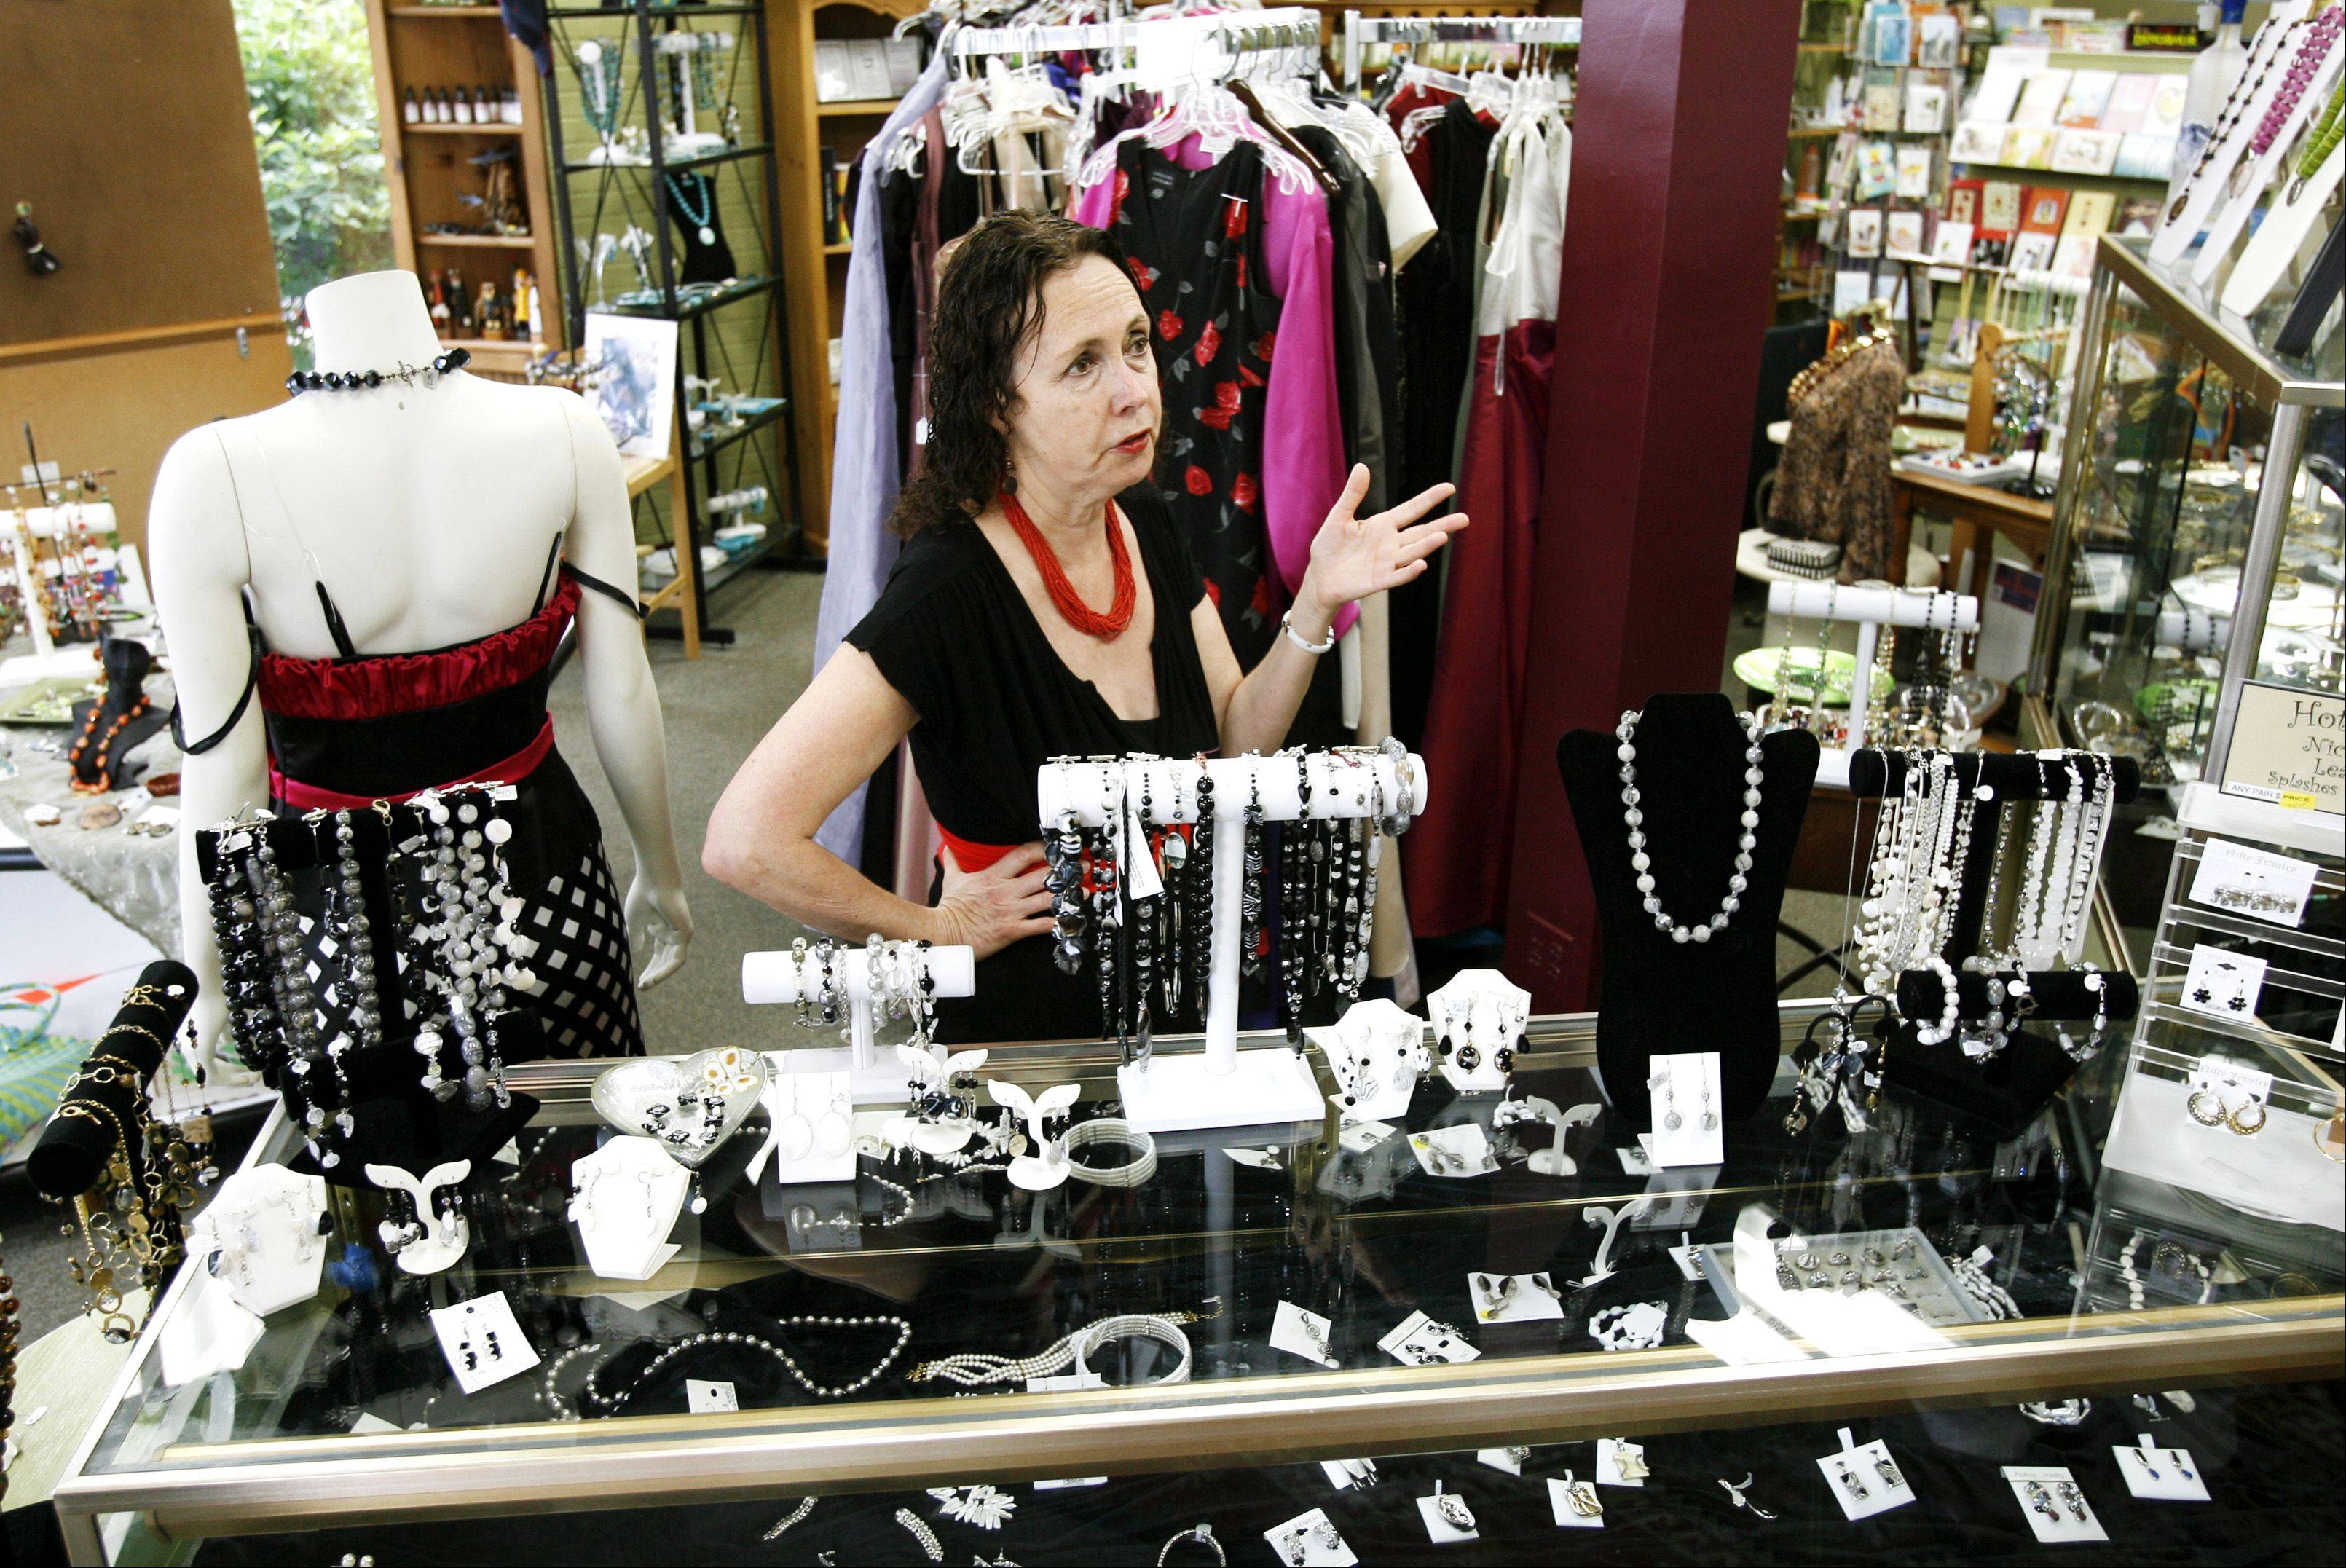 SARET Charitable Fund President Chana Bernstein says she may close the charity's downtown Glen Ellyn store if sales don't pick up in the next few months.